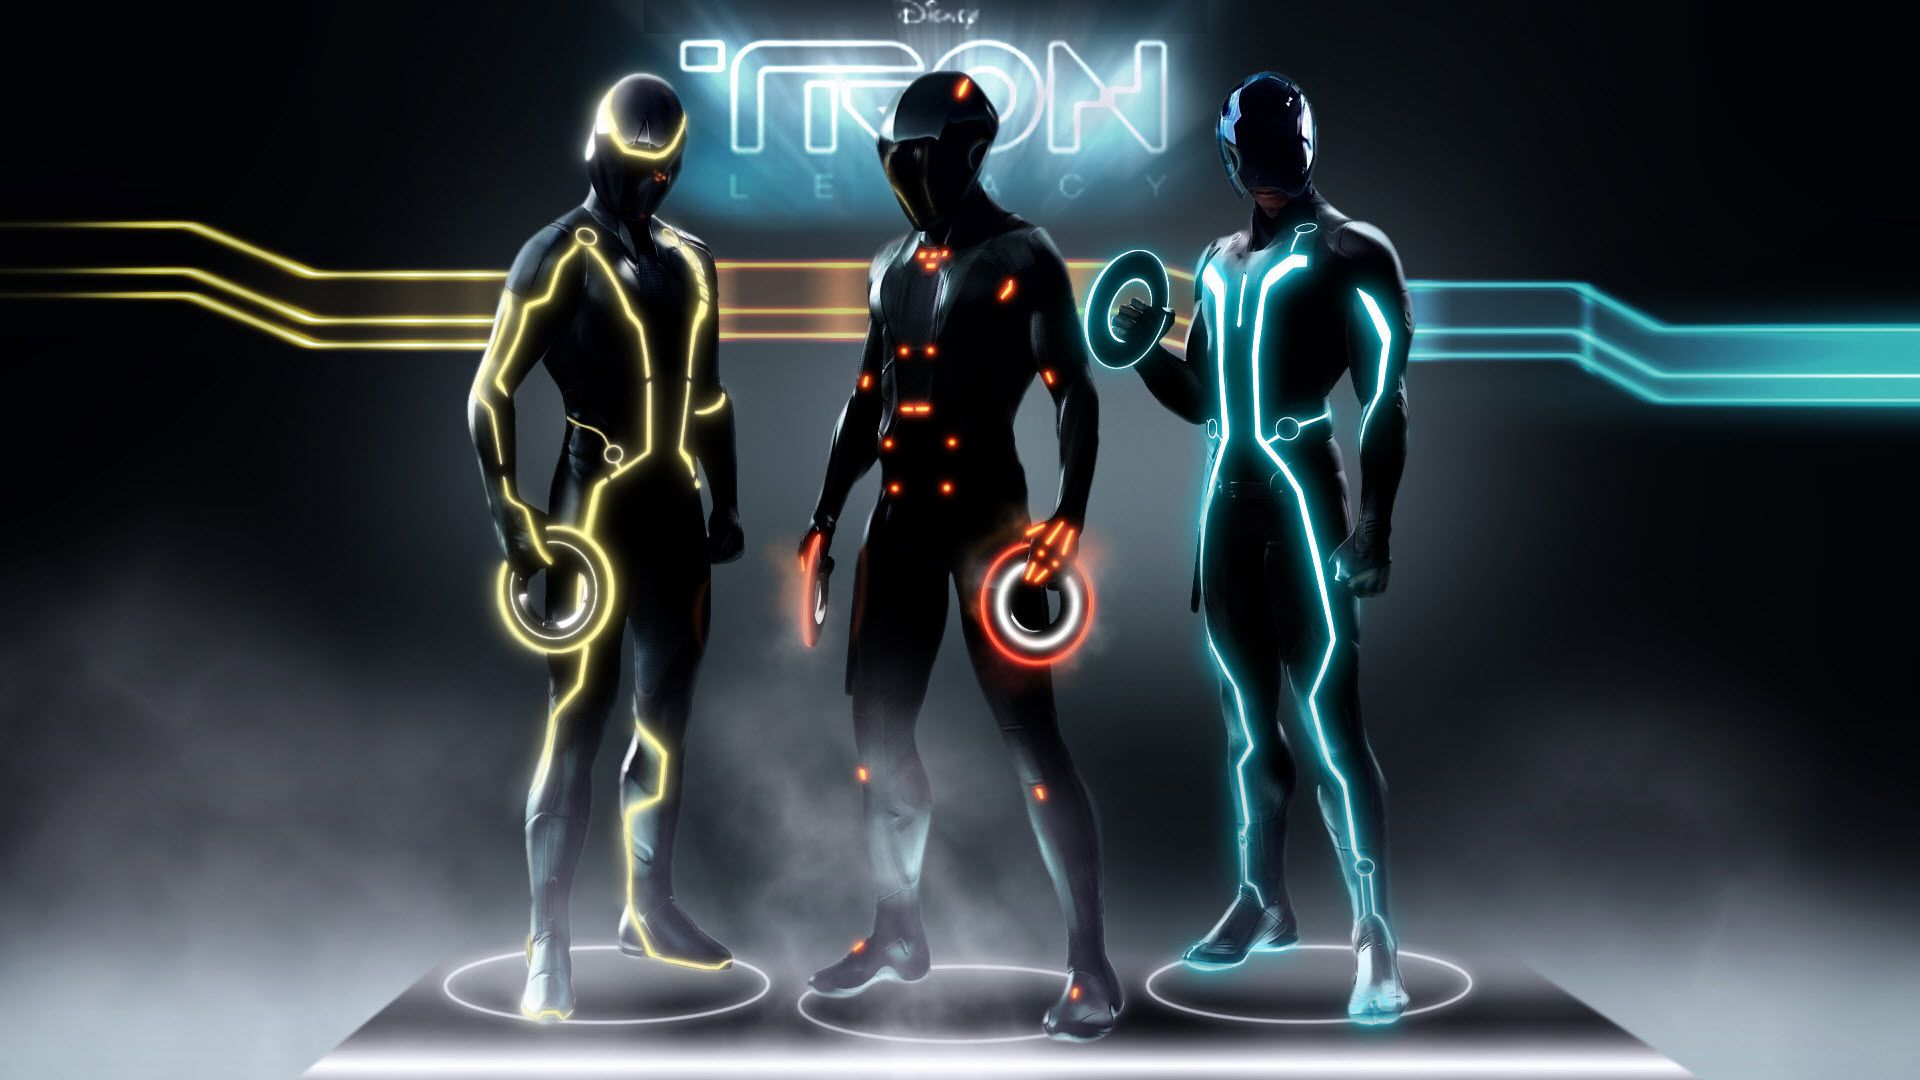 Tron Legacy Characters Stills Images Photos Pictures Wallpapers Tron Legacy Tron Character Wallpaper